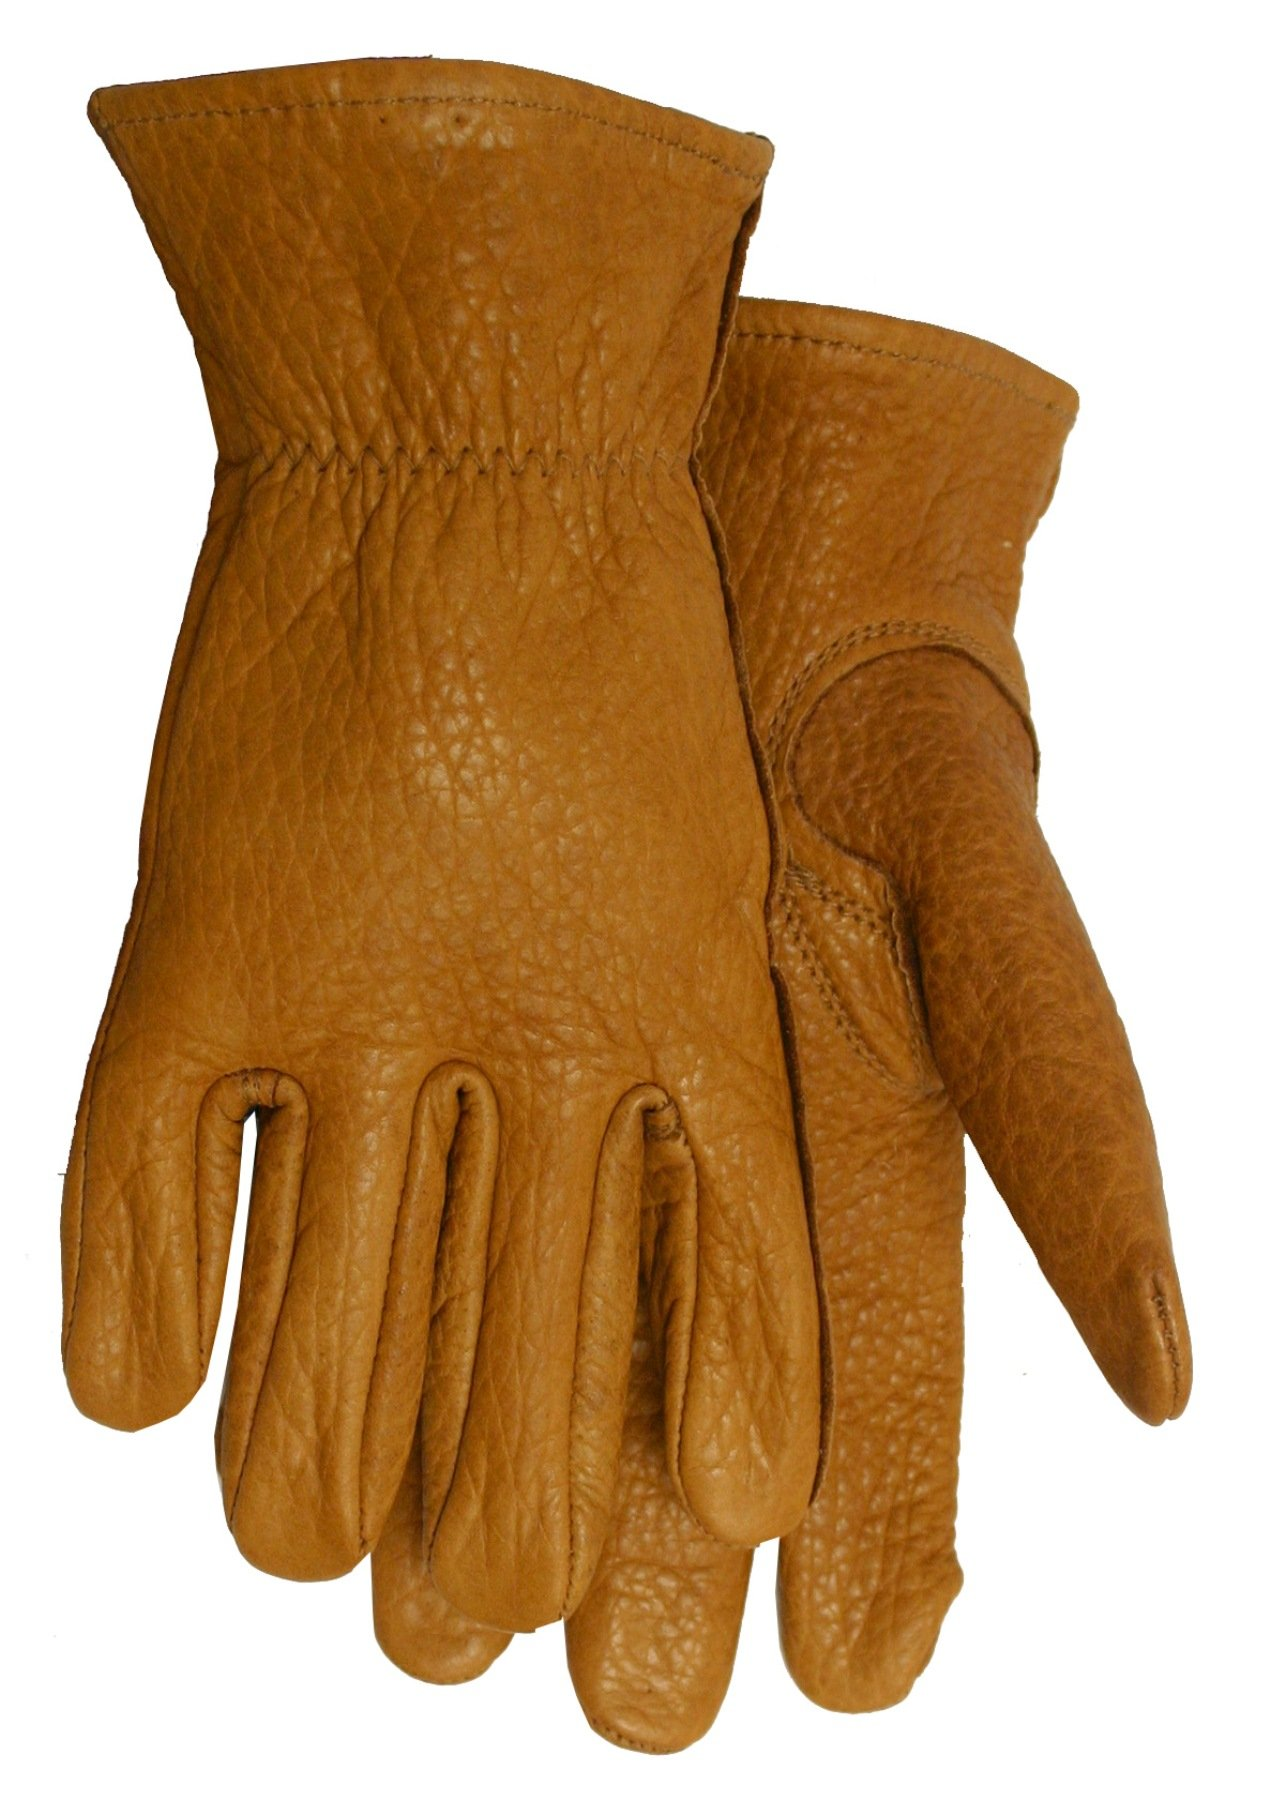 Buffalo leather work gloves - American Made Buffalo Leather Work Gloves 650 Size Medium